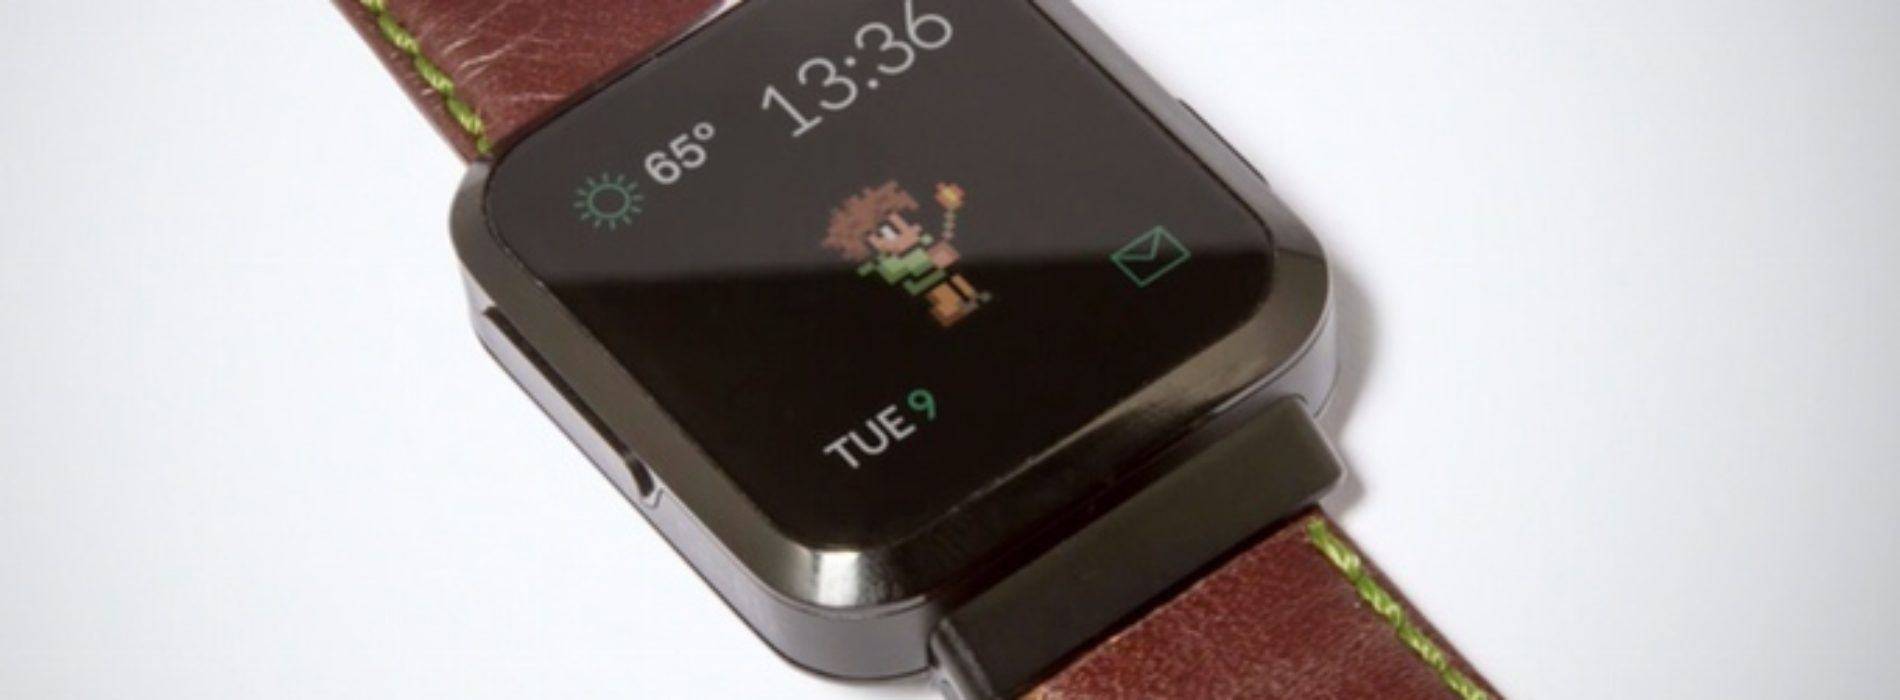 iwatch review